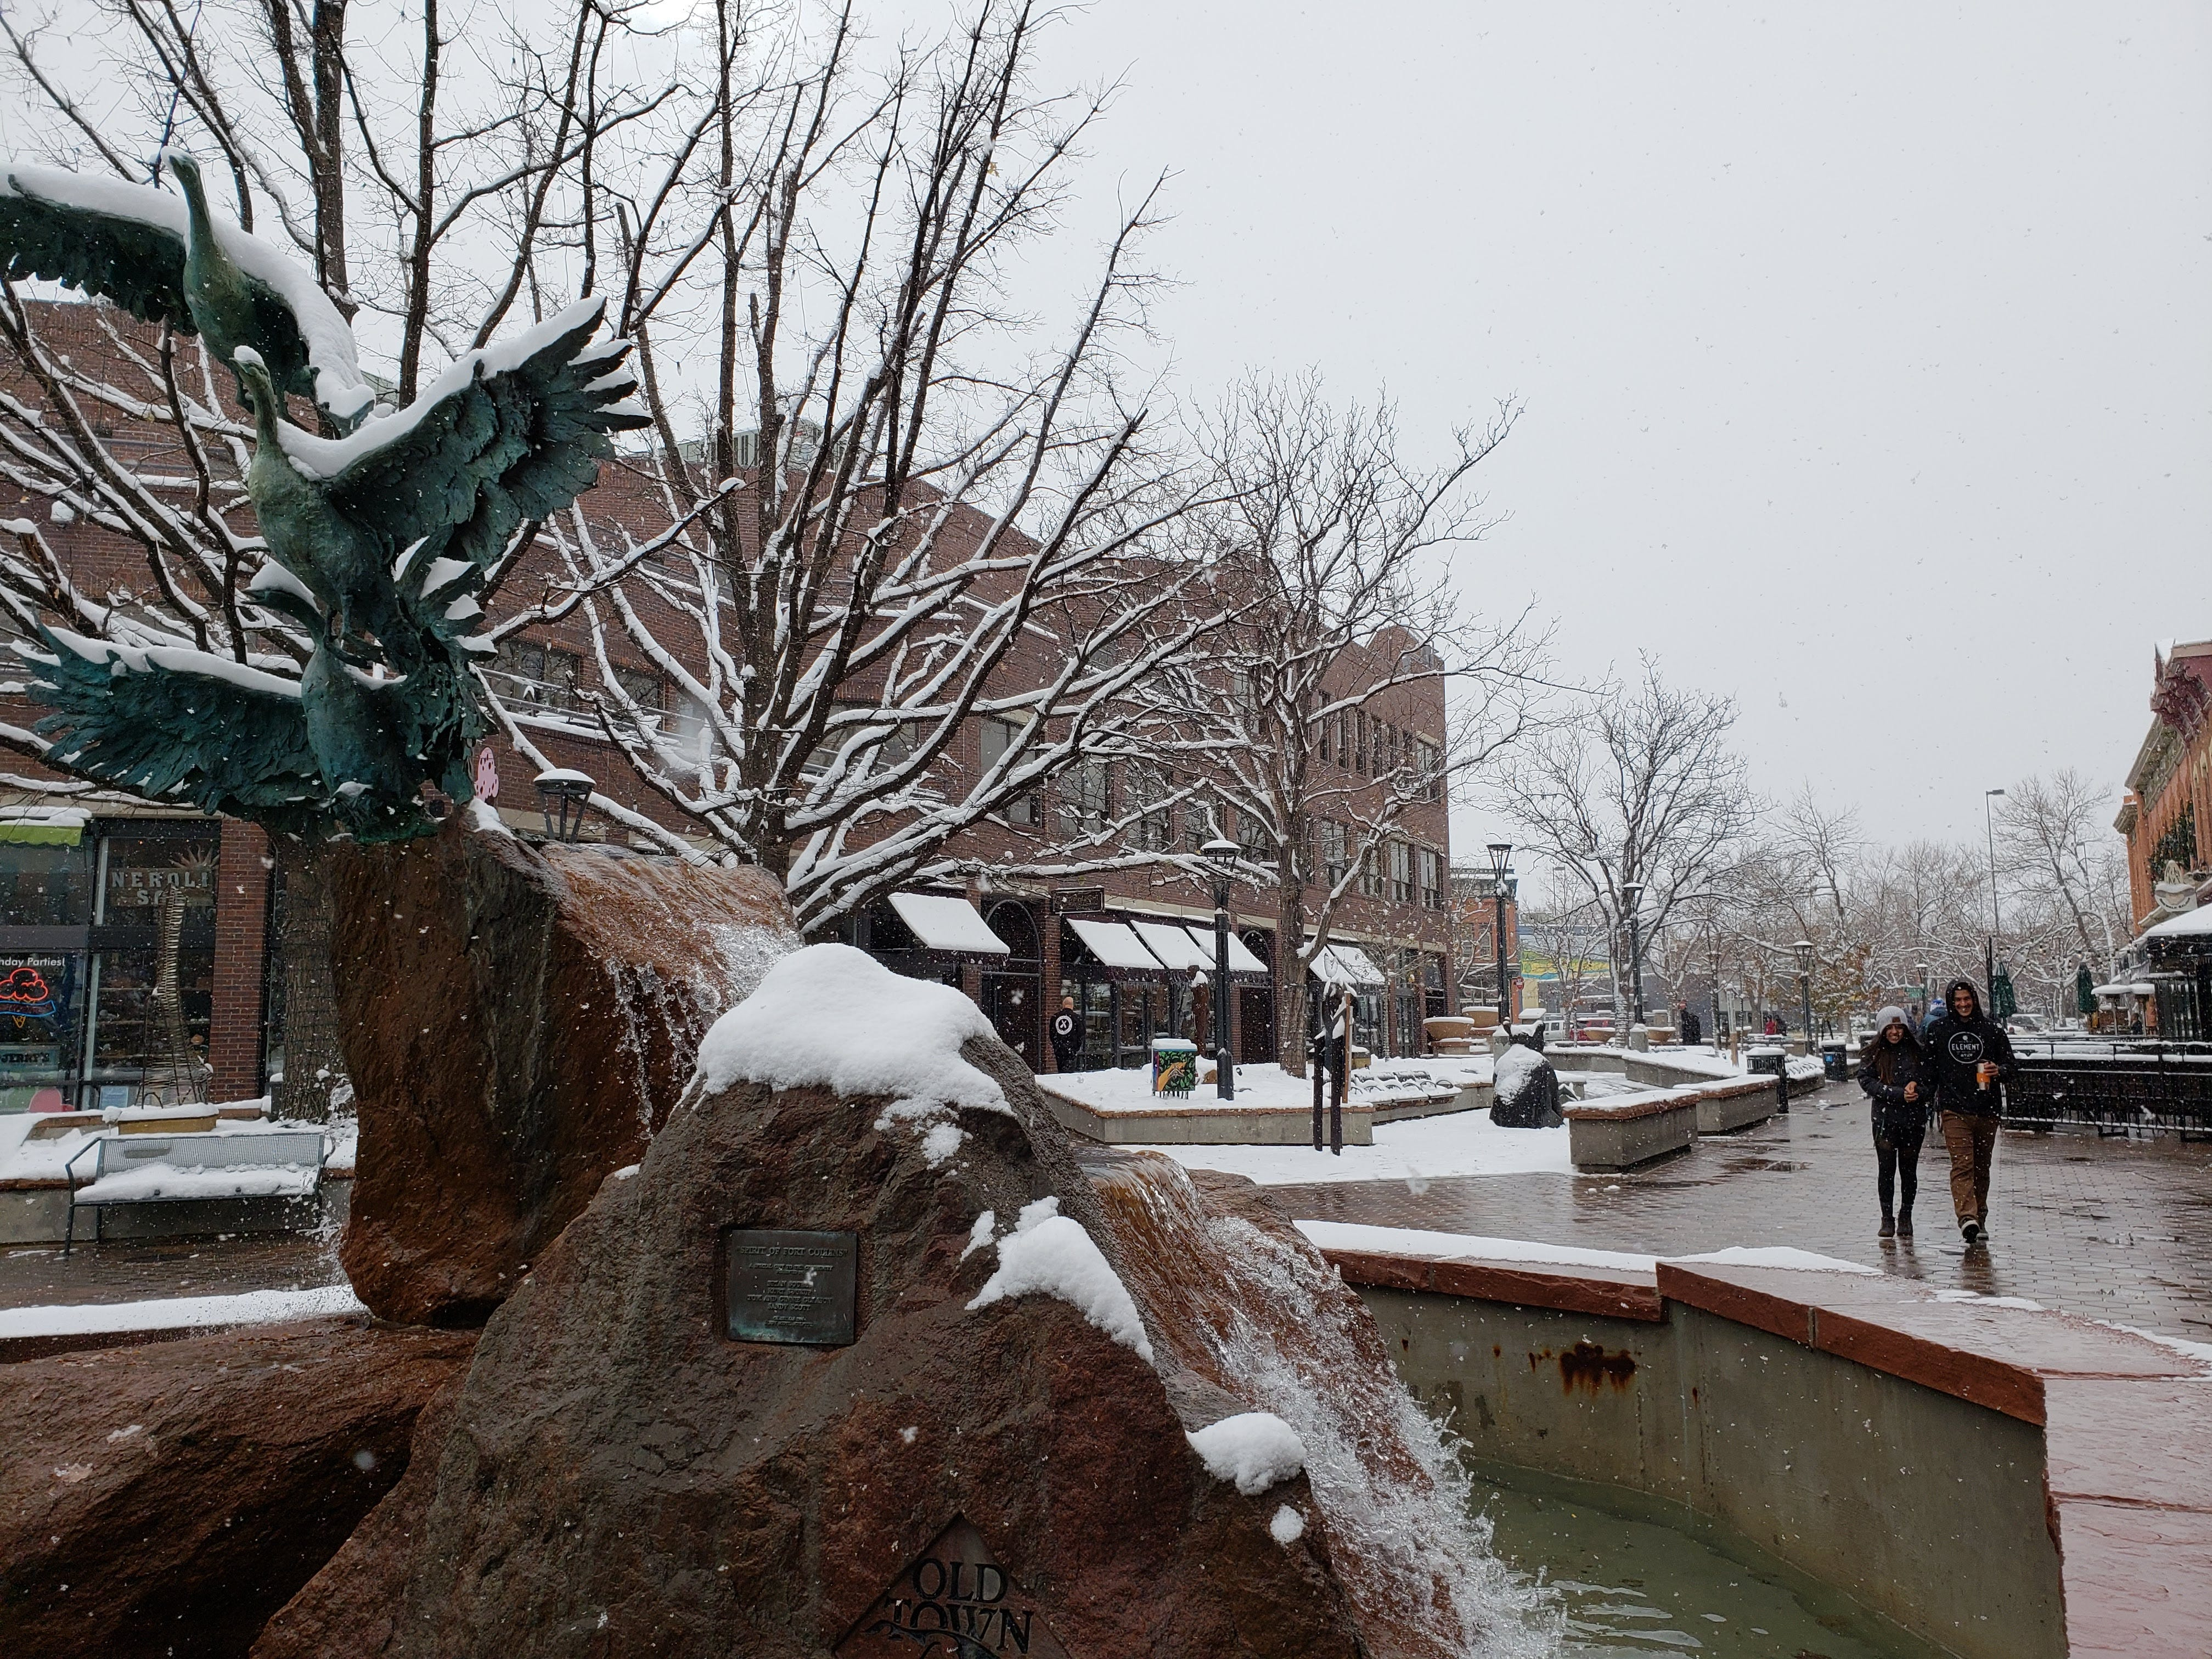 Scenes from a snowy Veteran's Day in Fort Collins on Nov. 11, 2018.